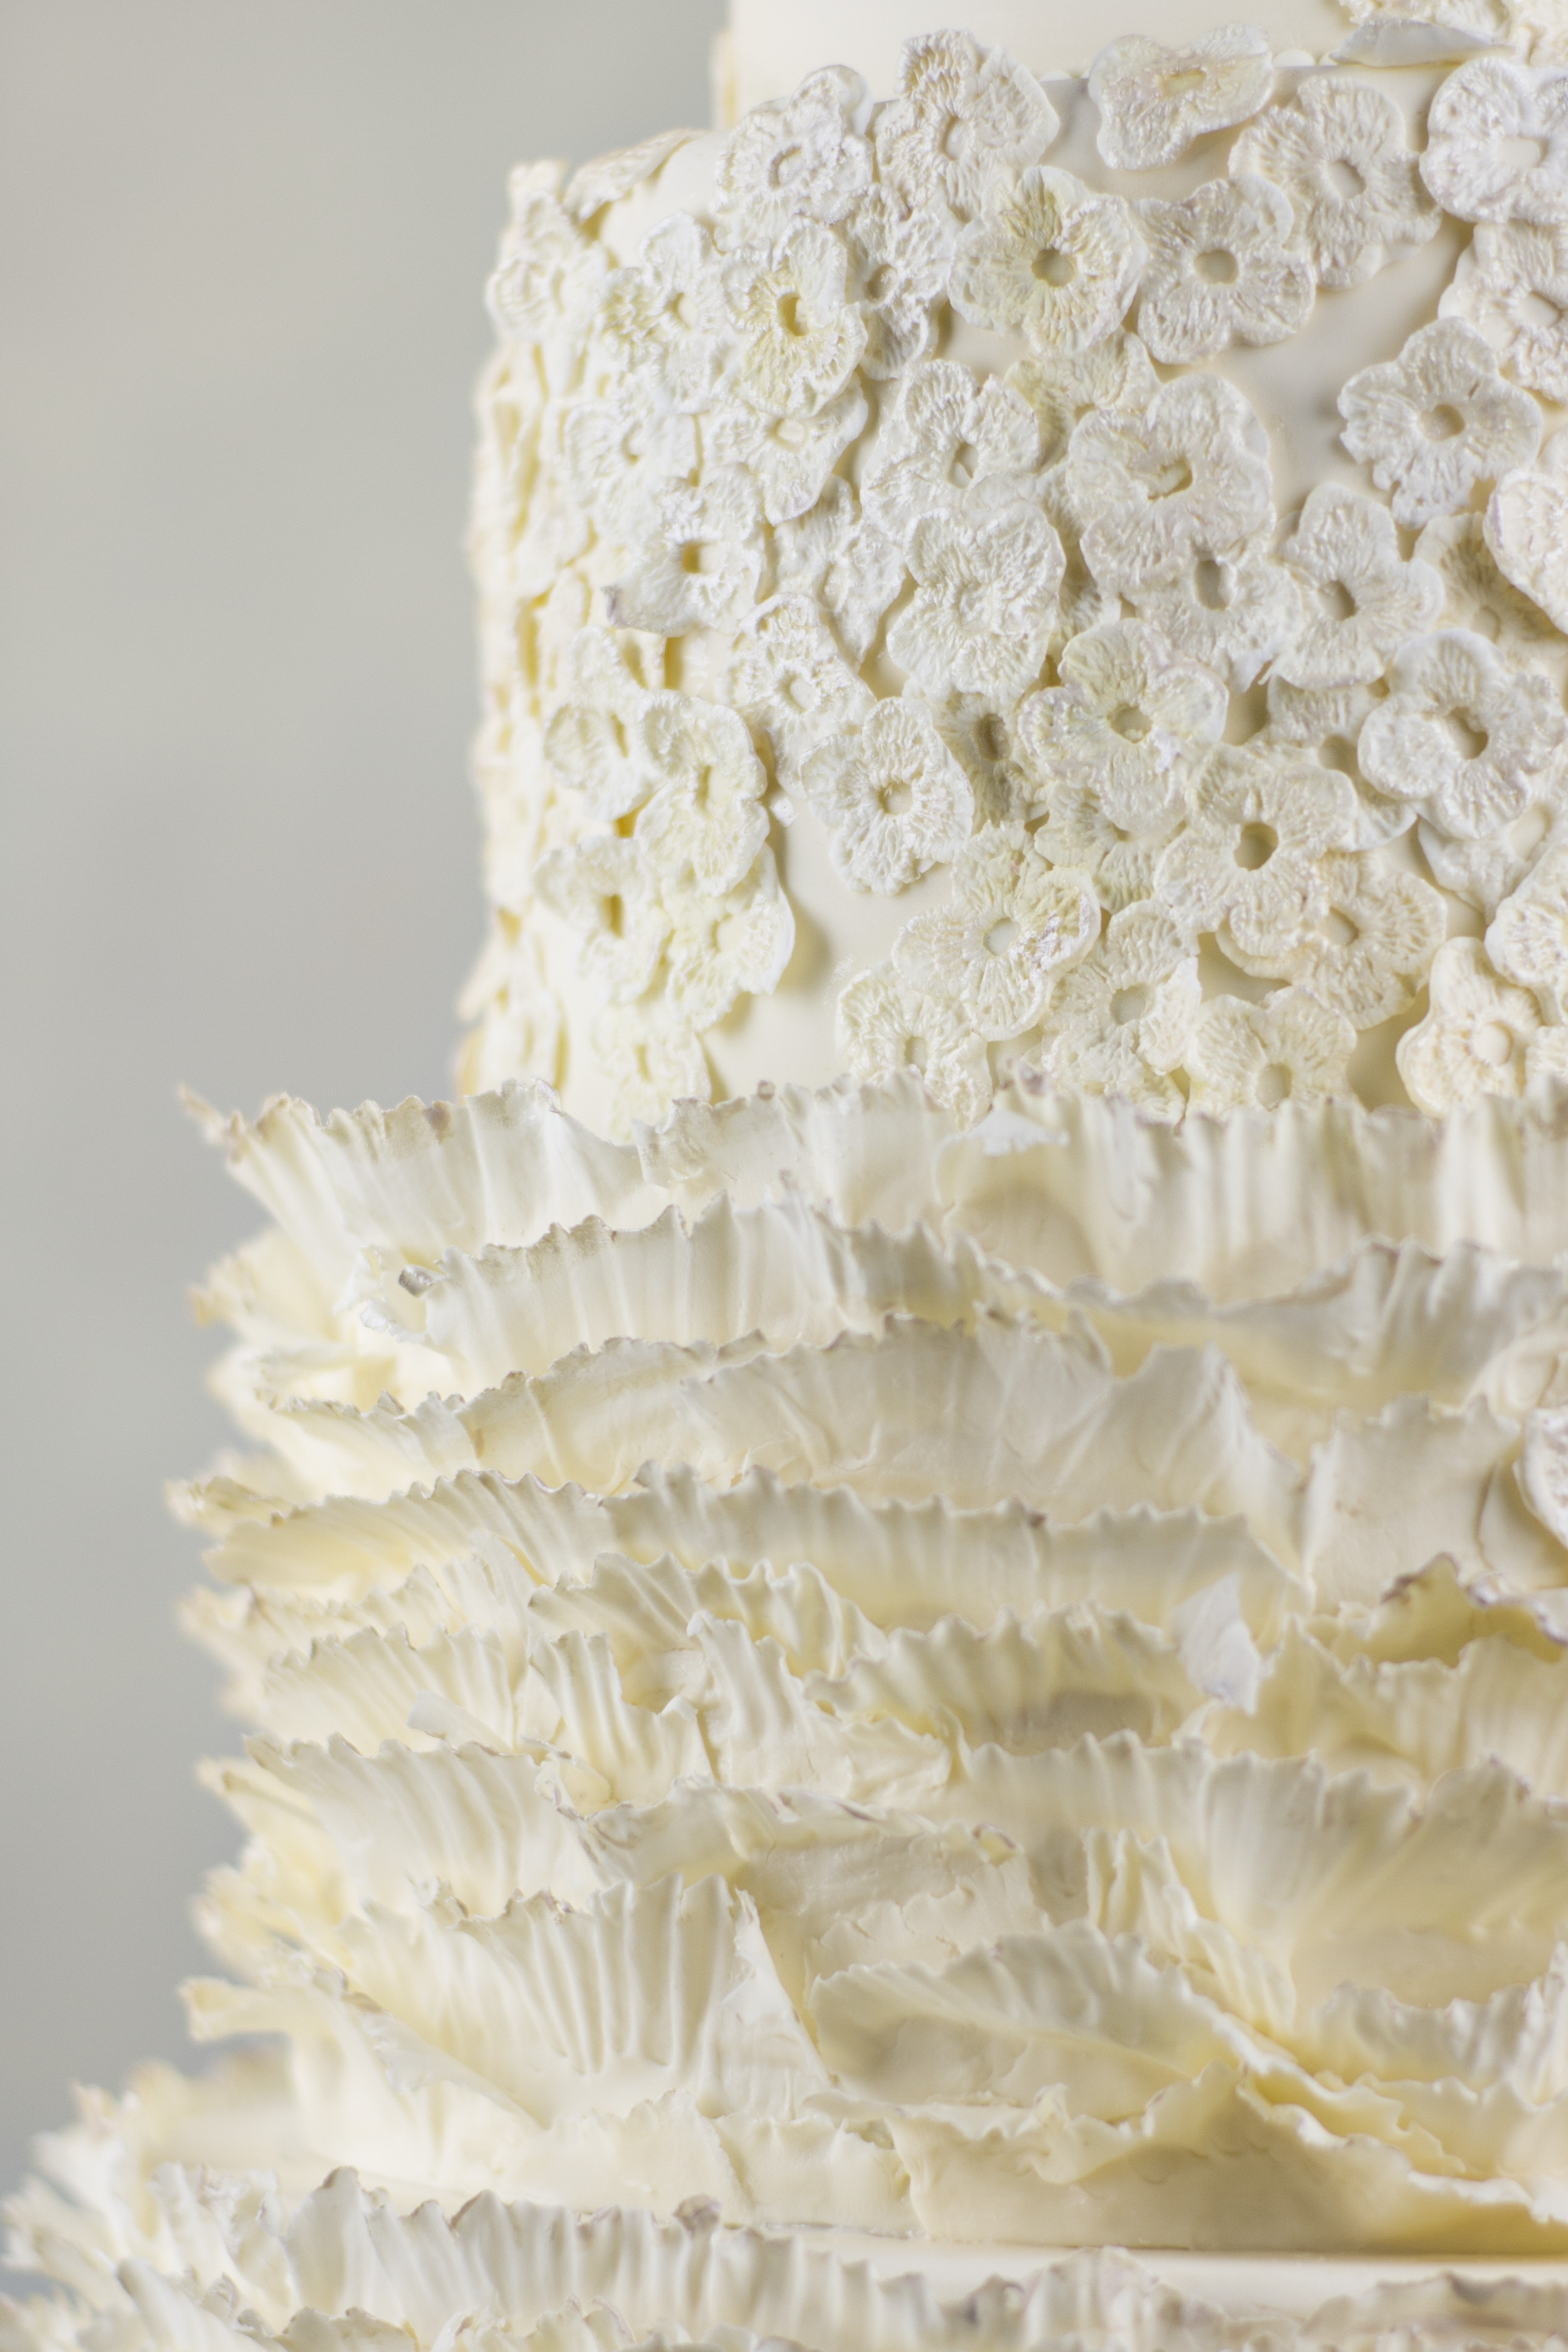 All white bas relief and textured fondant ruffle wedding cake